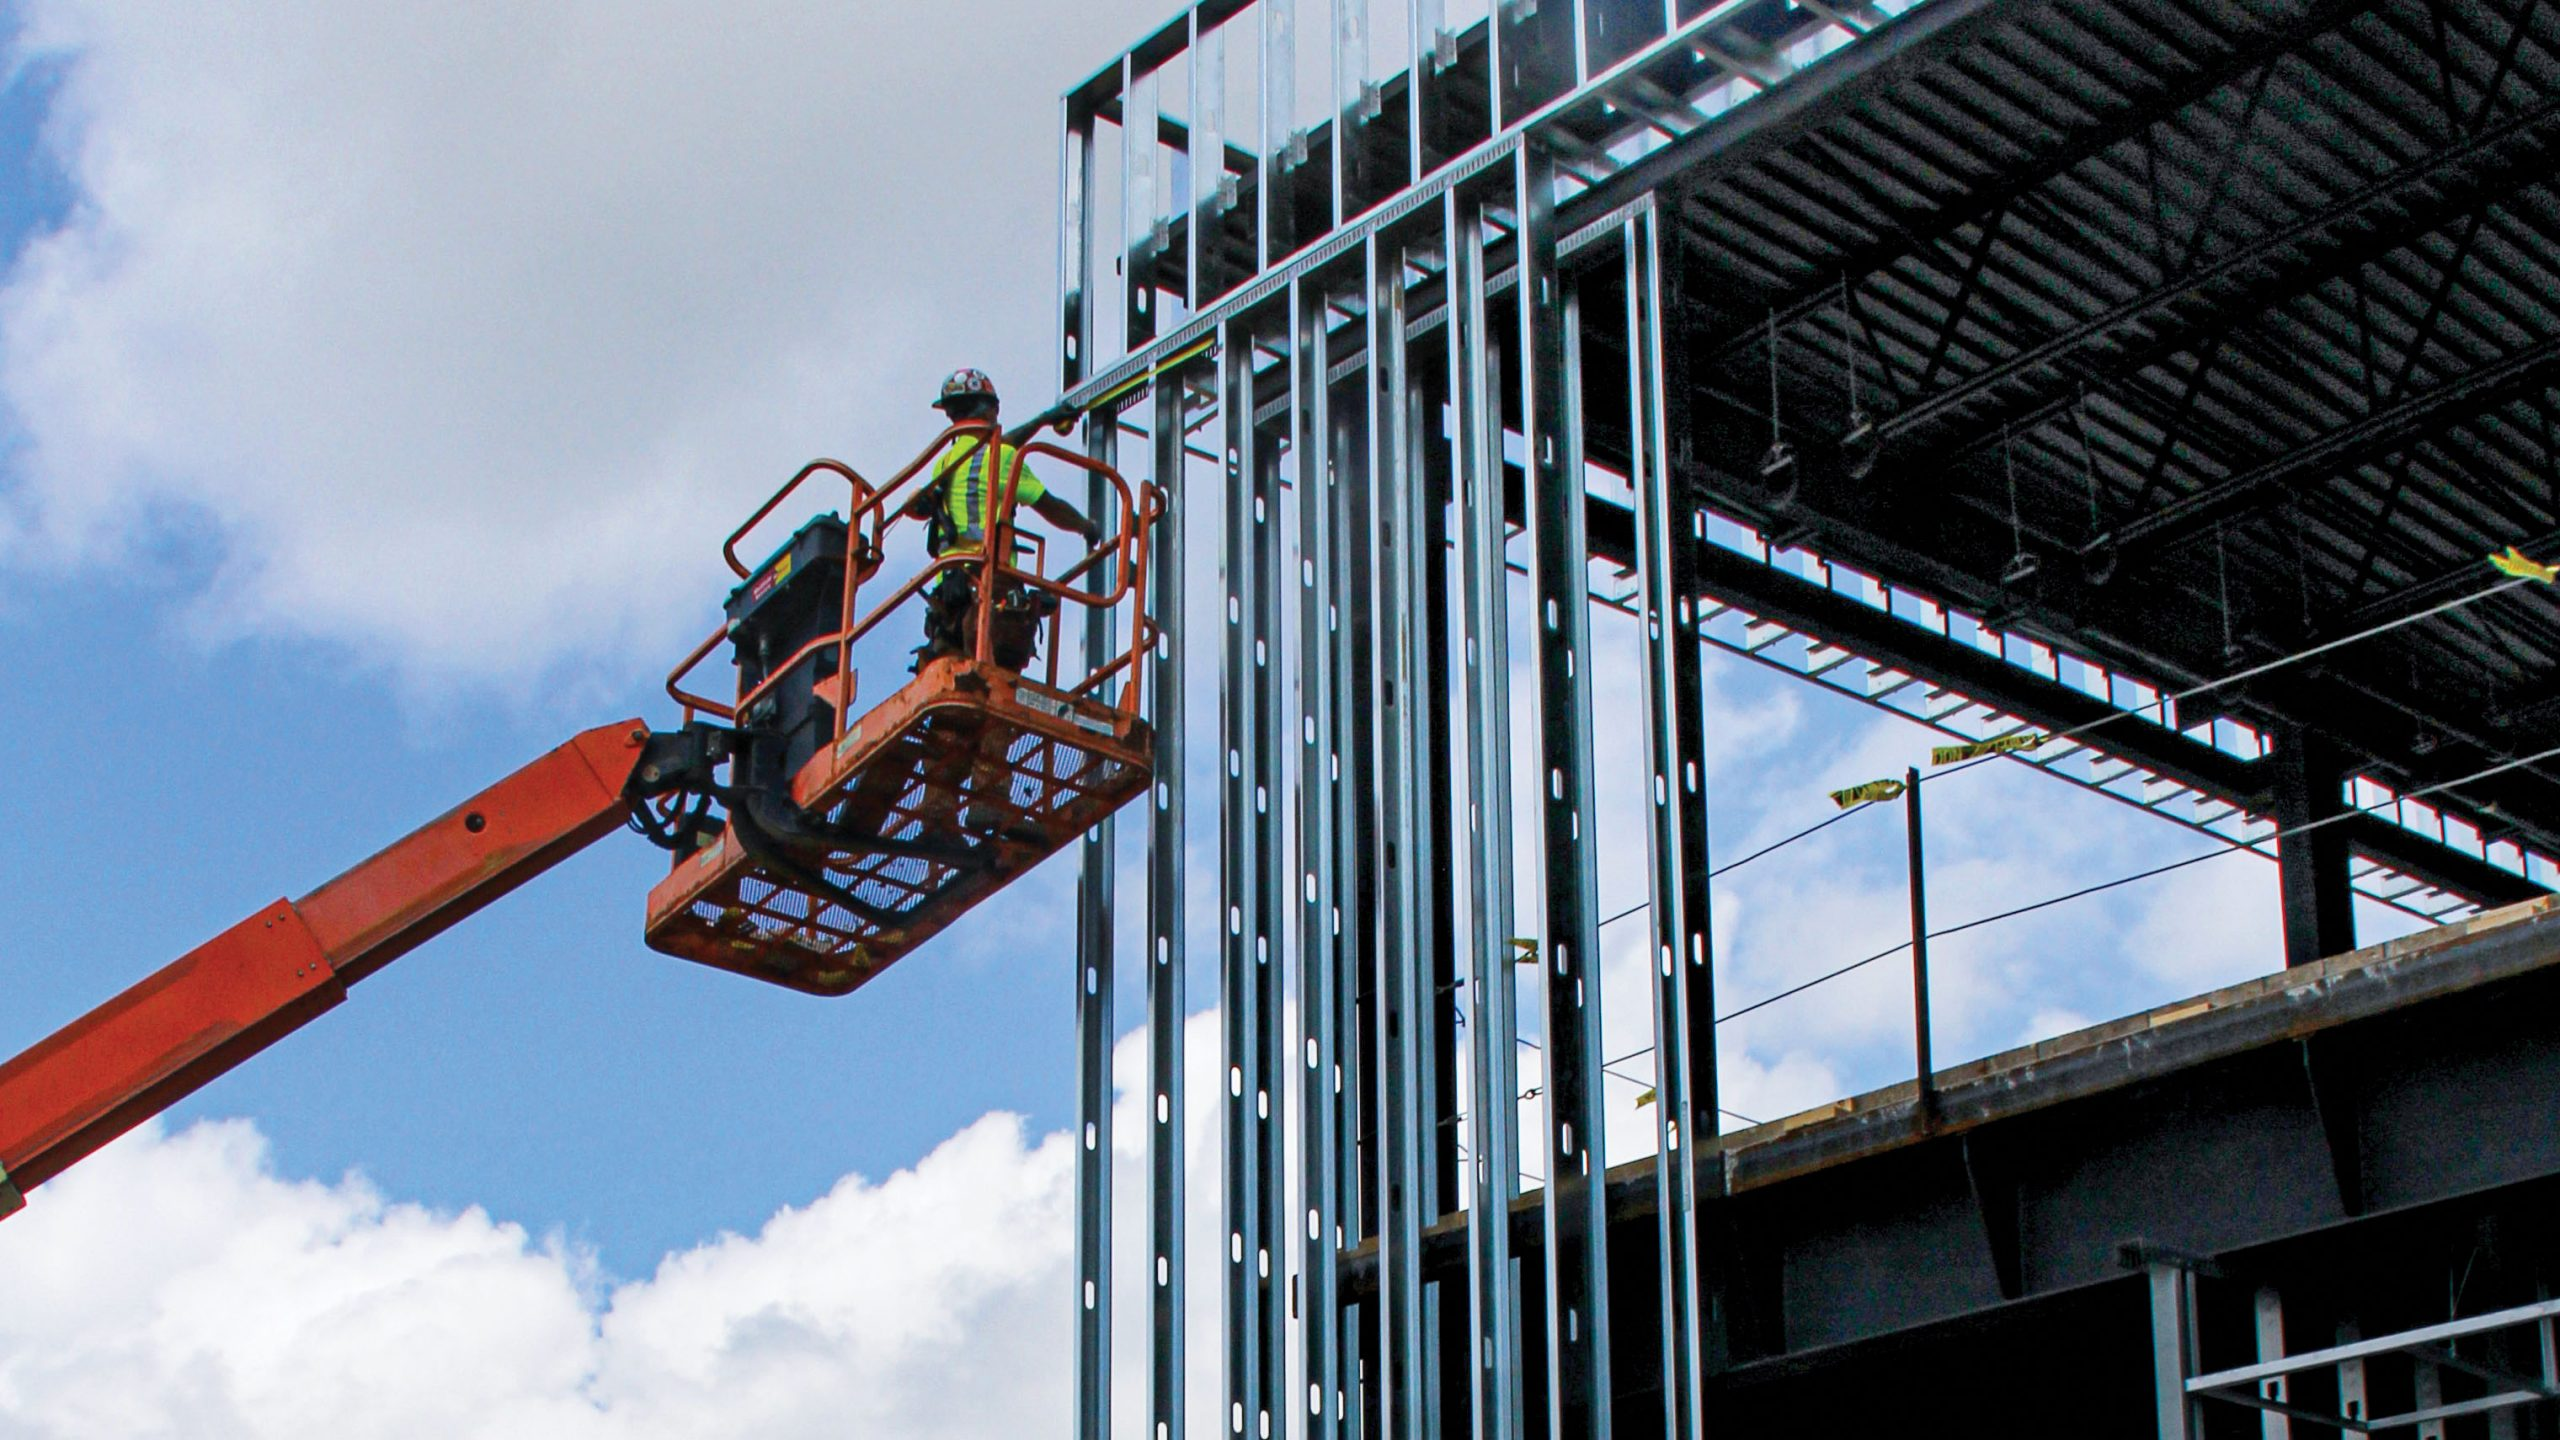 Skilled tradesmen work on the construction site of ELGA Credit Union's new headquarters